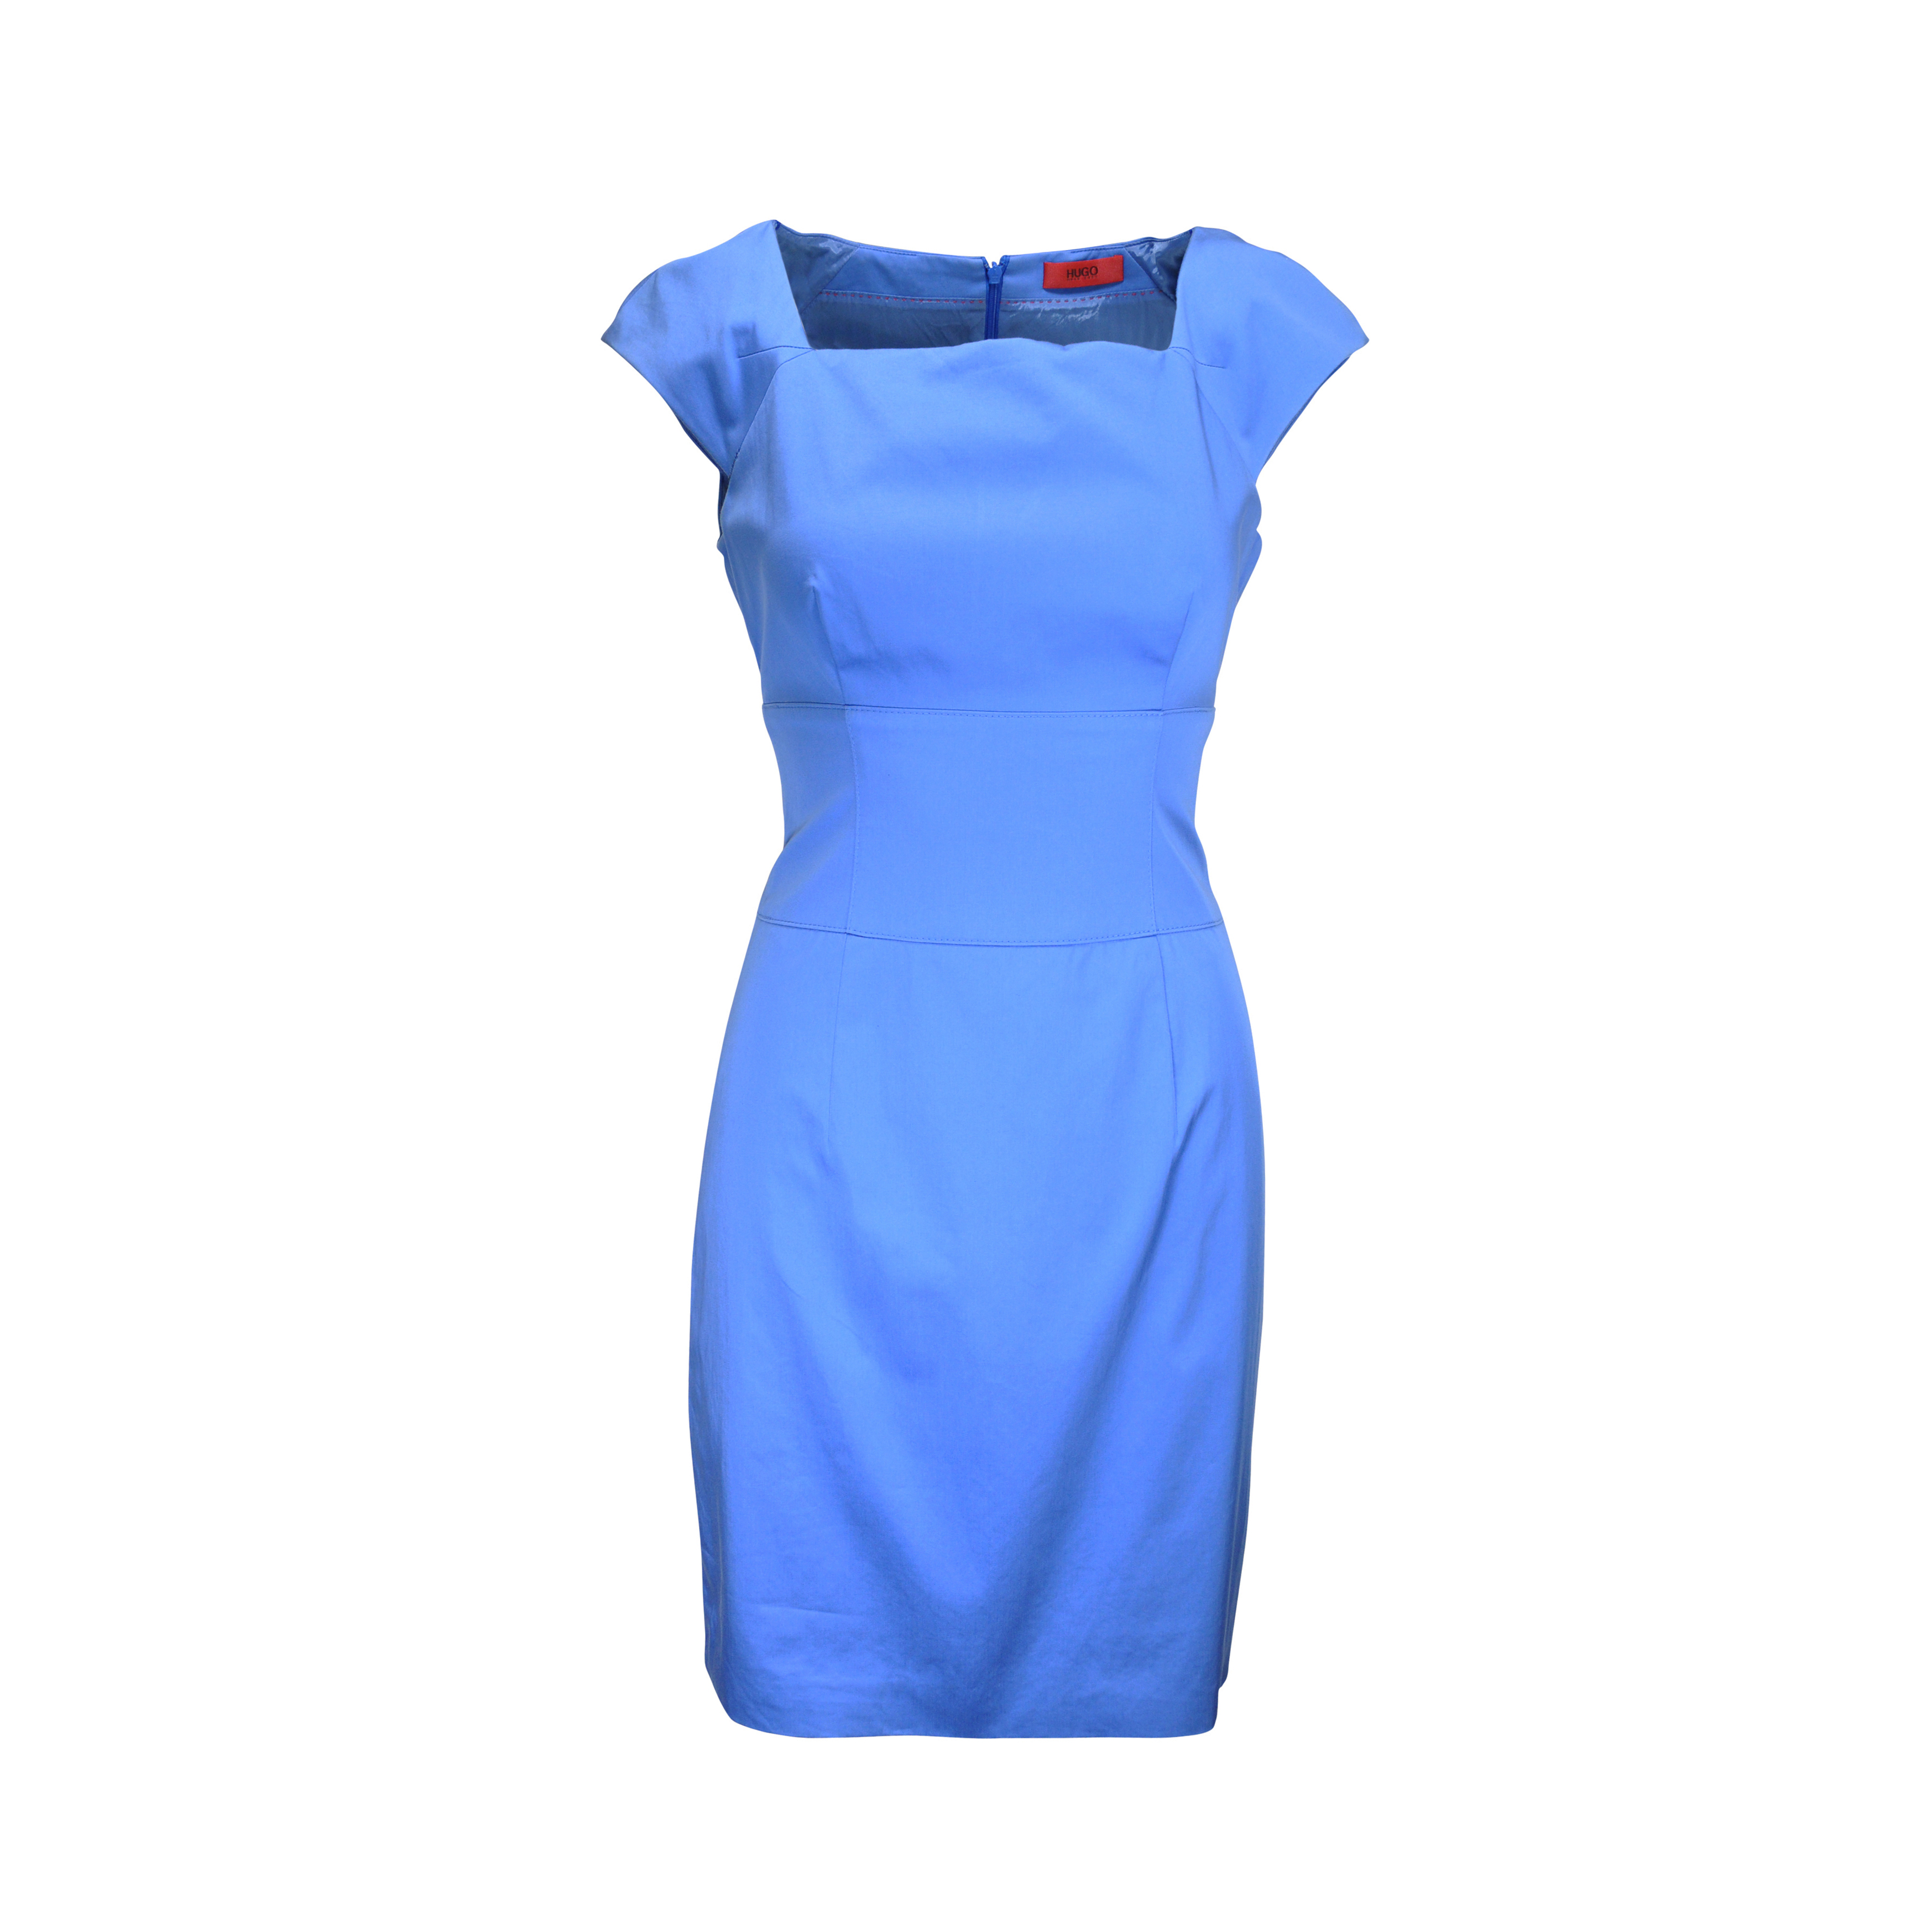 5f81bb54 Authentic Second Hand Hugo Boss Light Blue Sheath Dress (PSS-061-00007) -  THE FIFTH COLLECTION